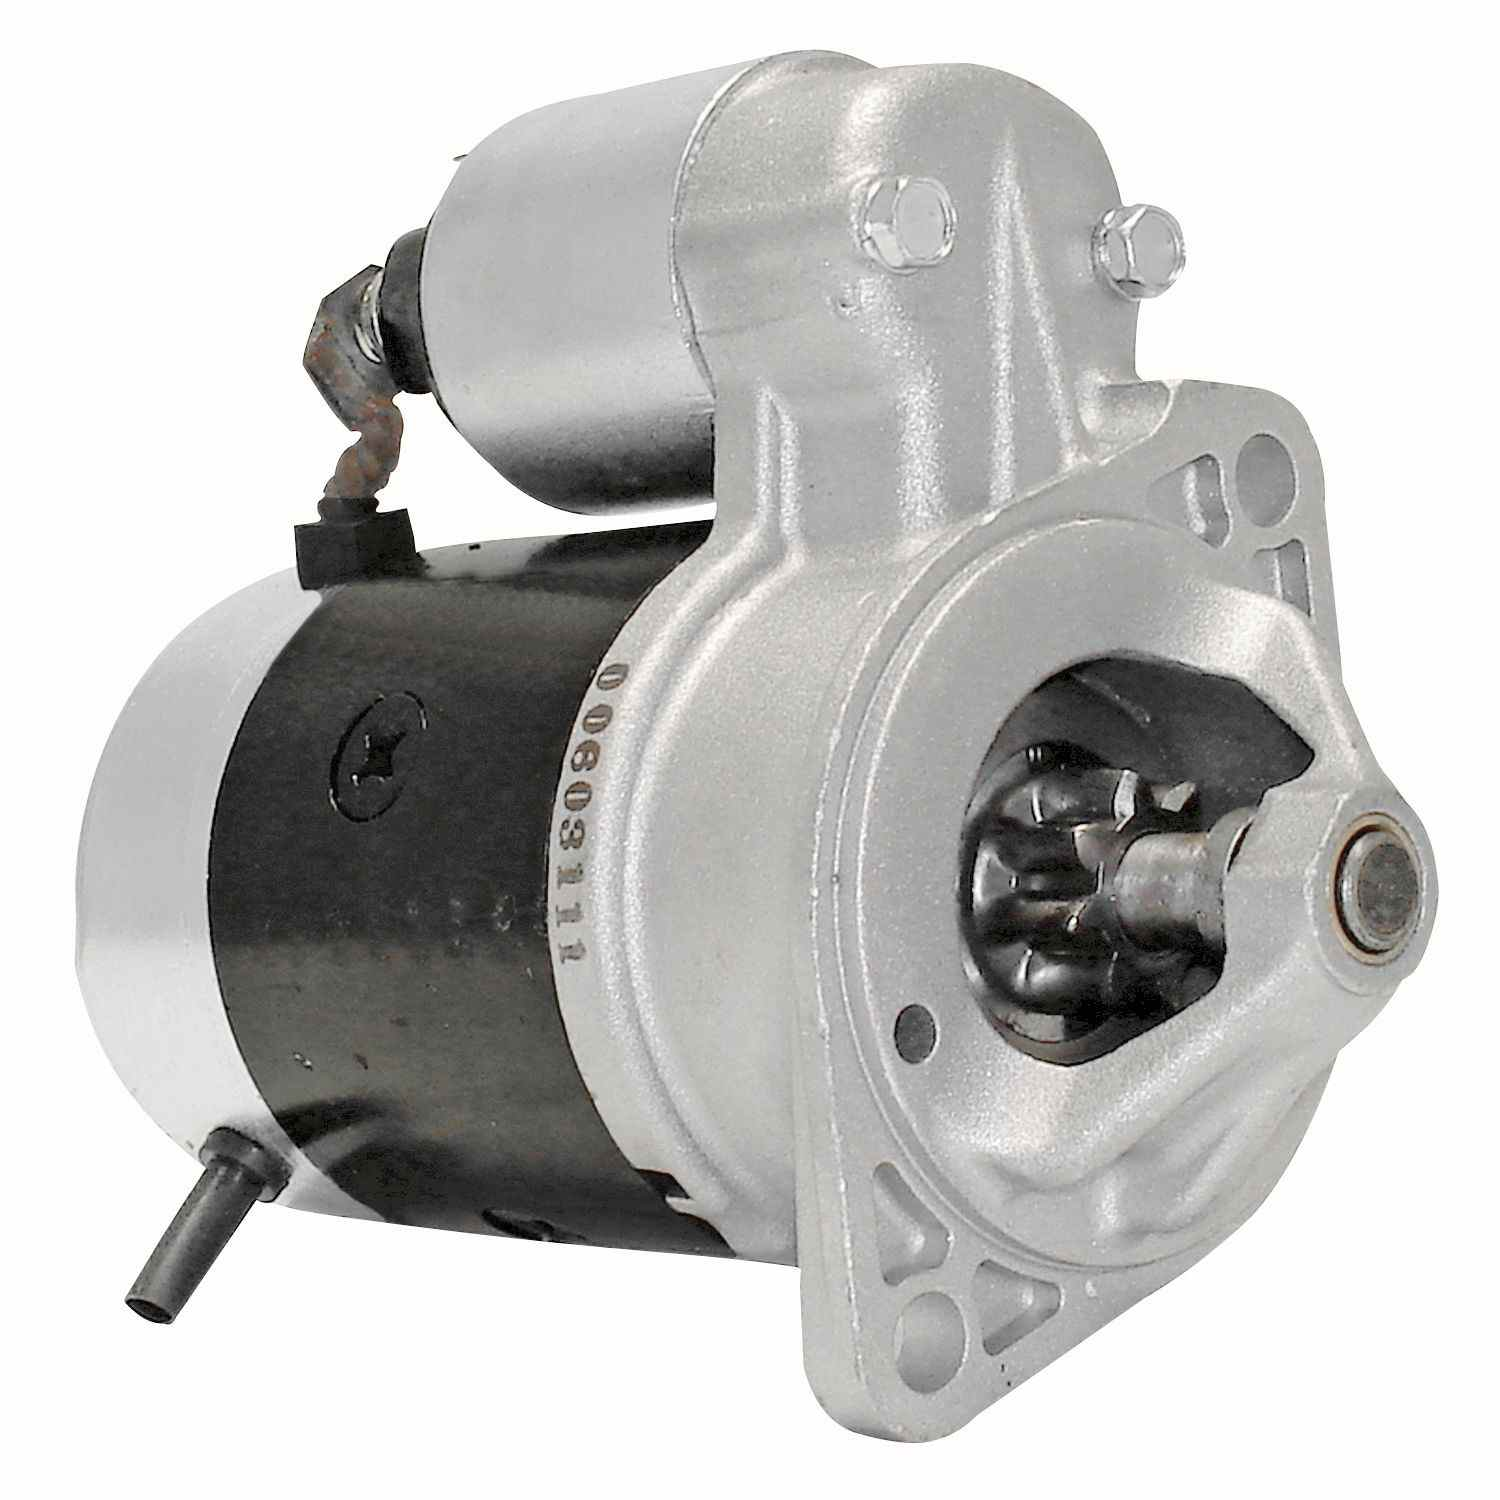 ACDELCO GOLD/PROFESSIONAL - Reman Starter Motor - DCC 336-1410